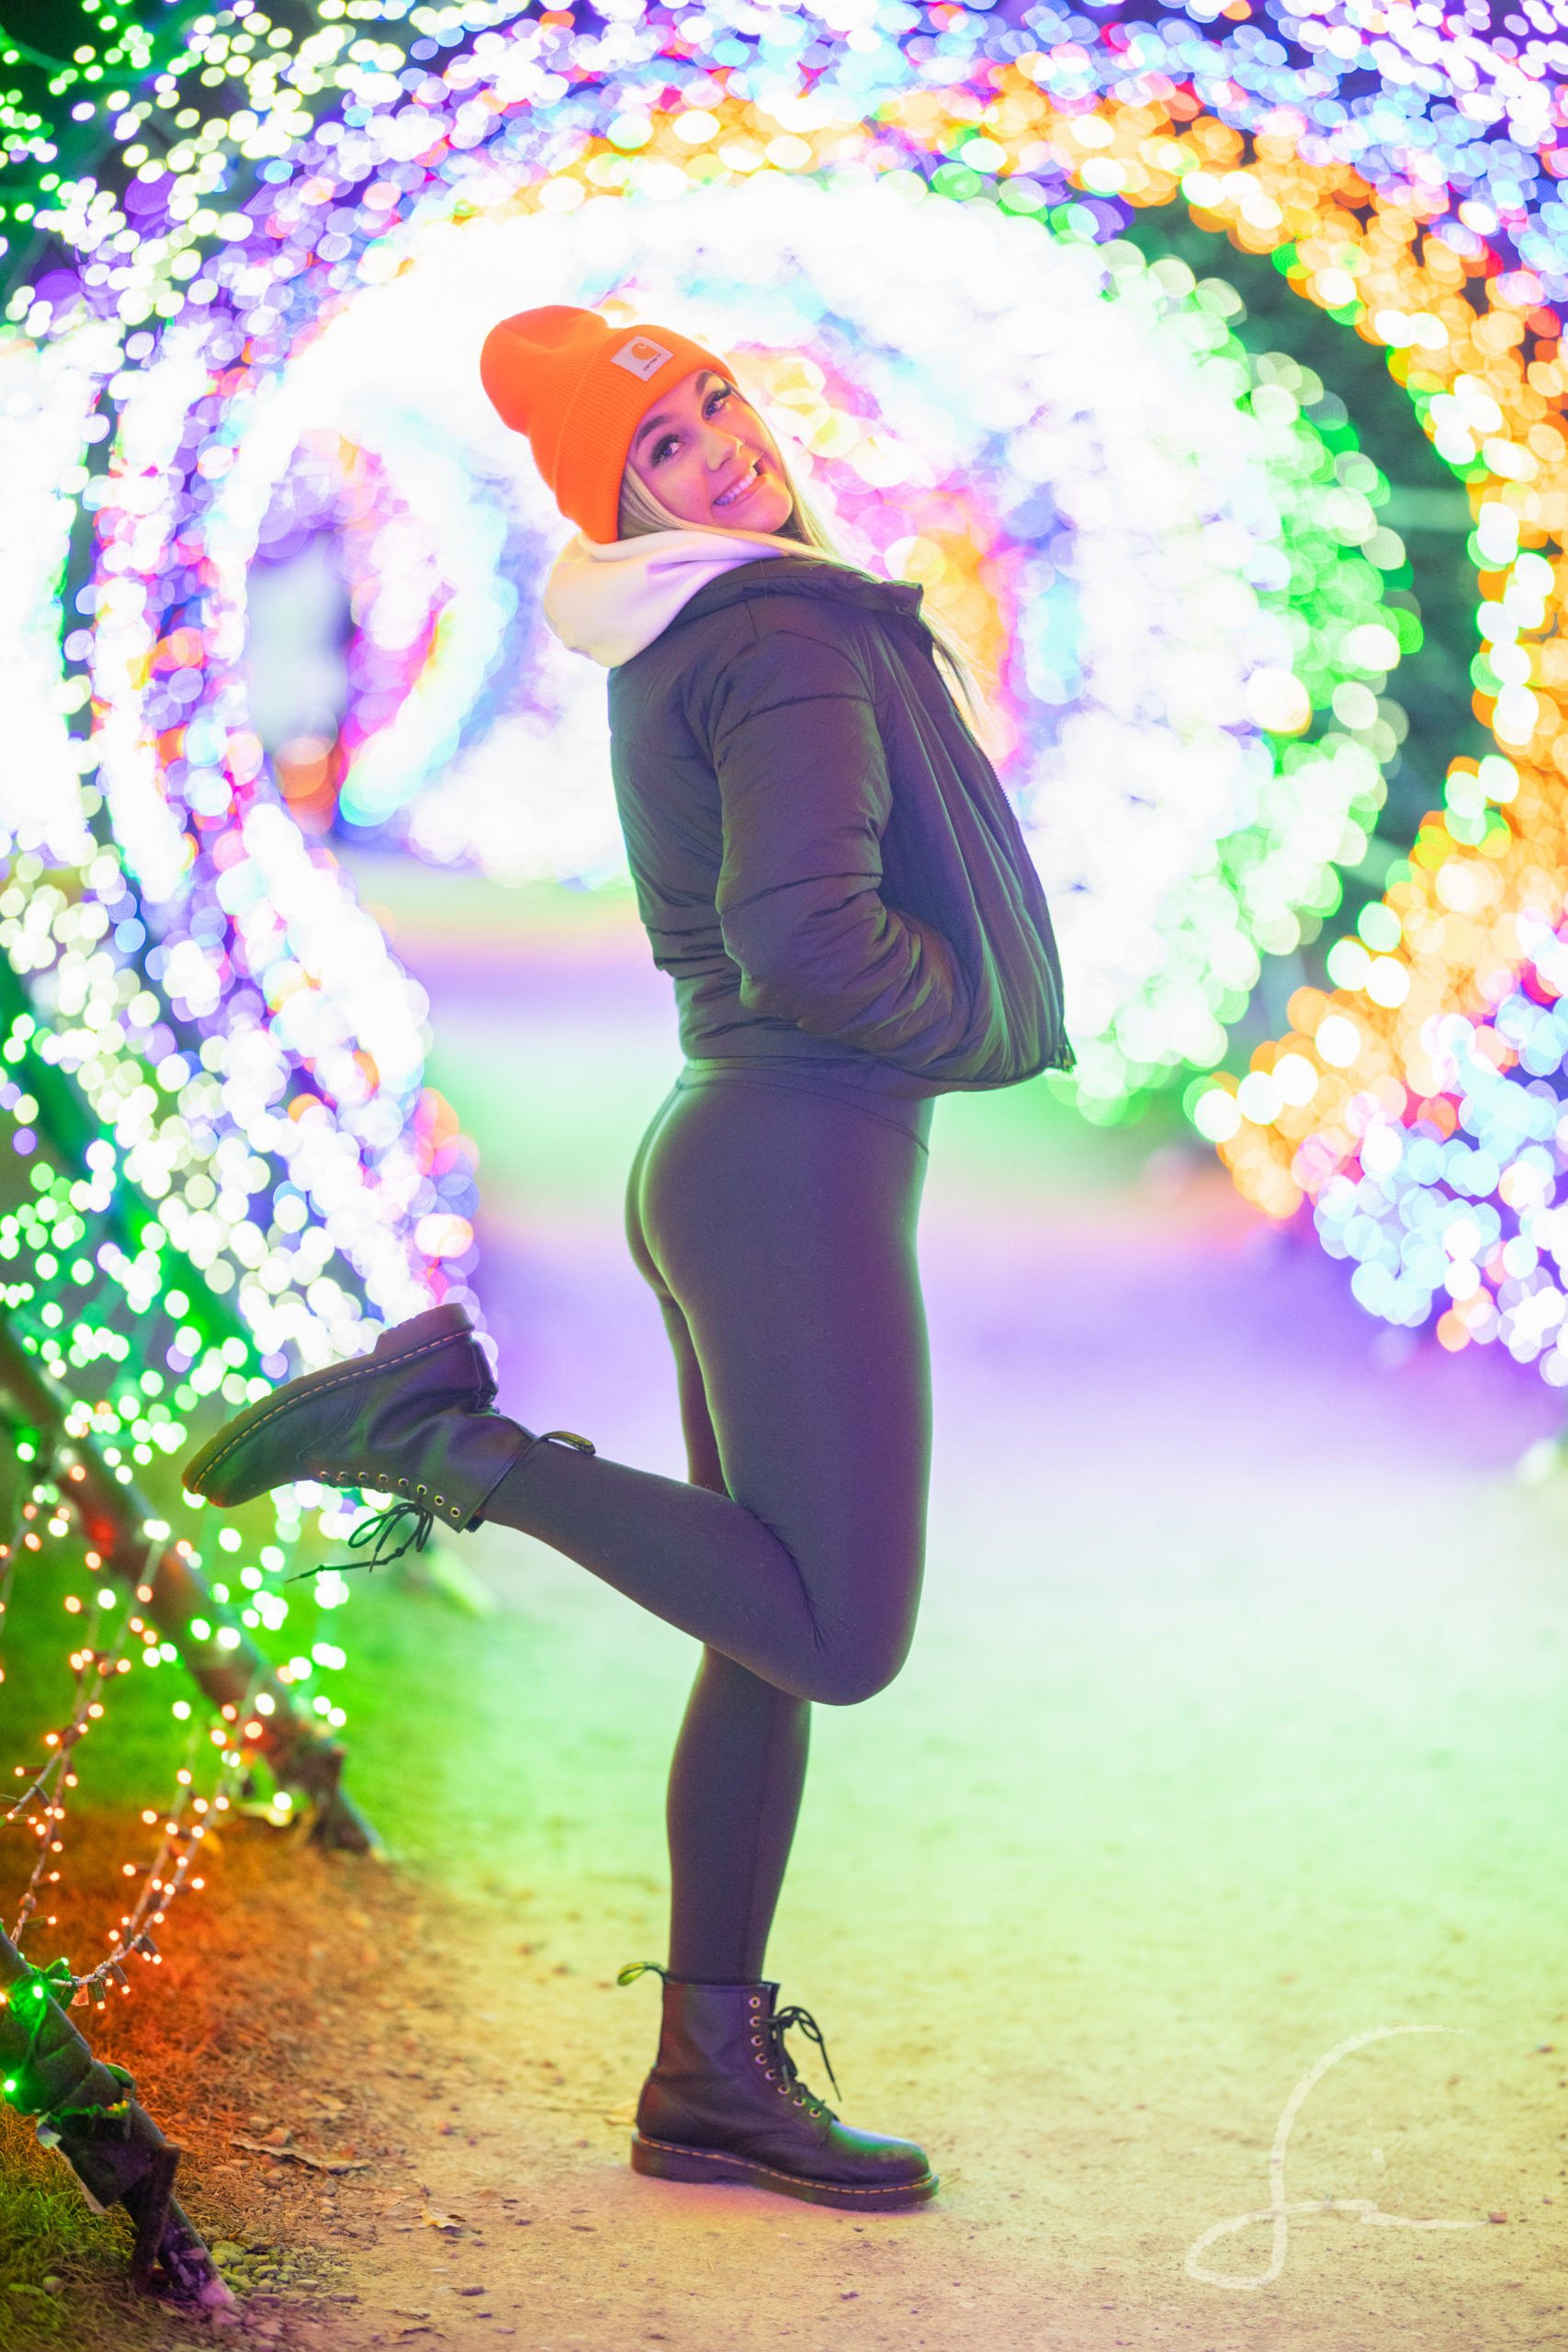 High School Senior Girl in a tube of Christmas Lights wearing leggings, a jacket, and a beanie hat